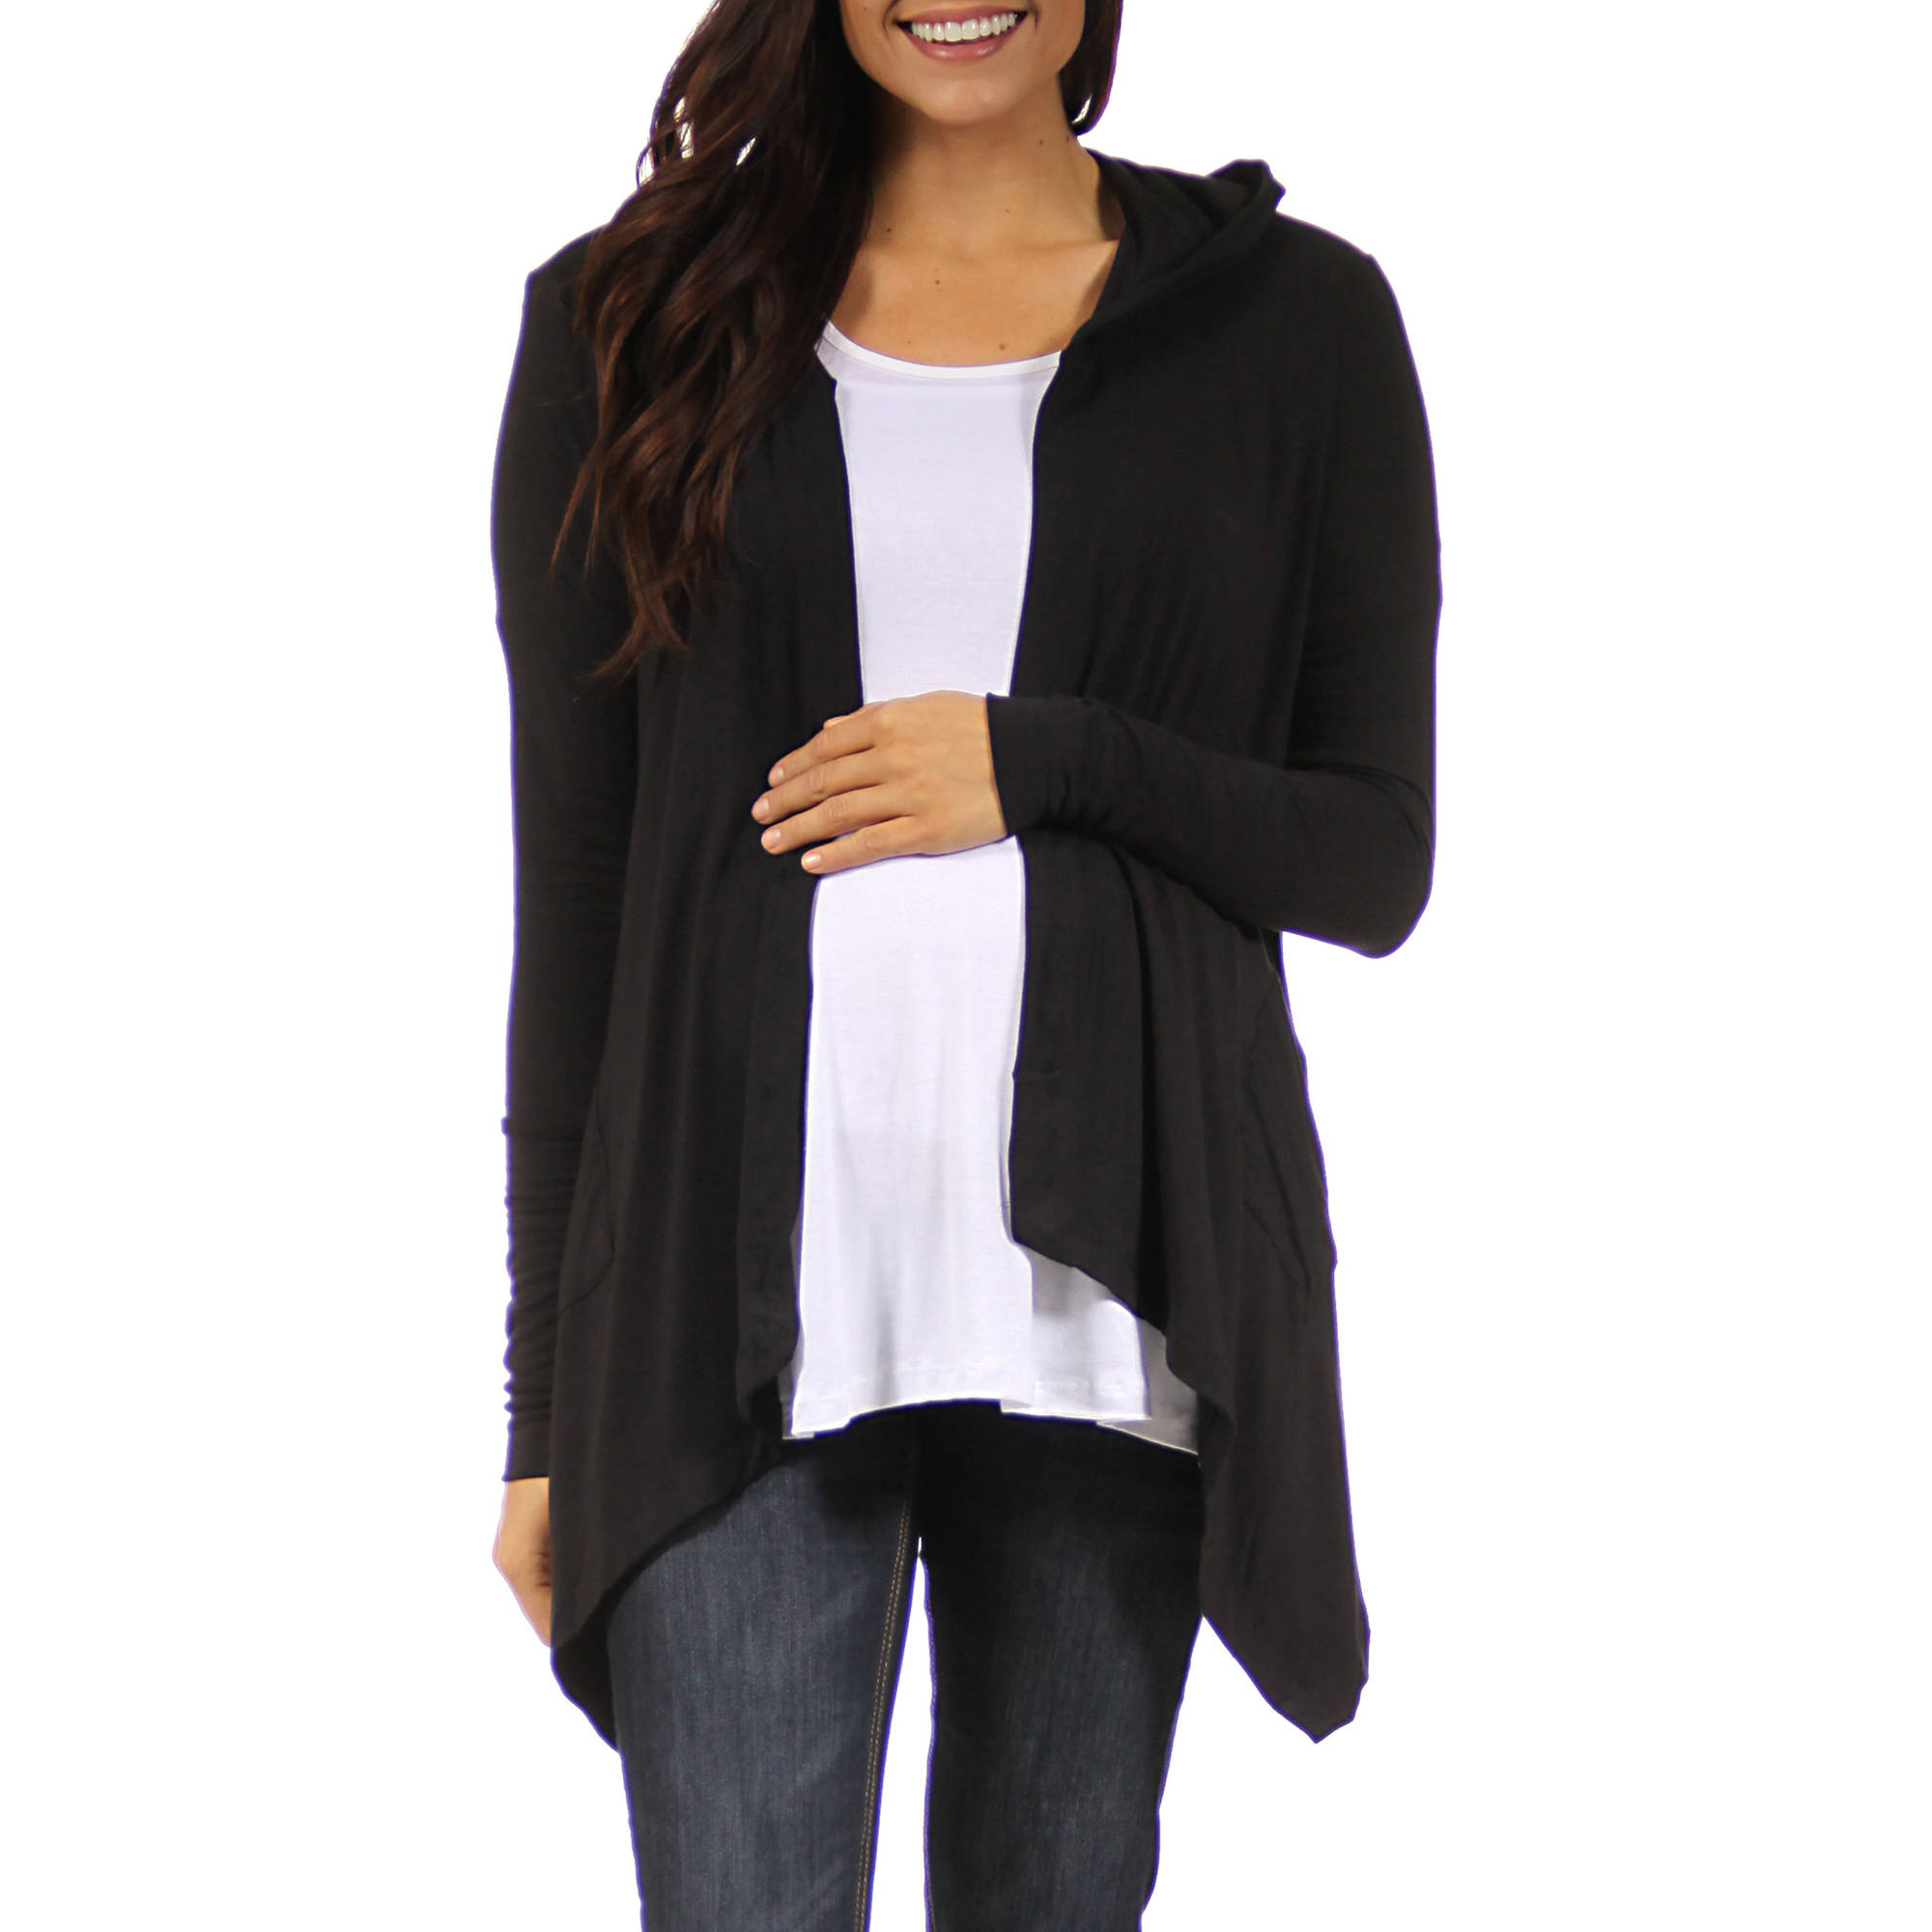 24/7 Comfort Apparel Women's 2-Pocket Hooded Maternity Shrug